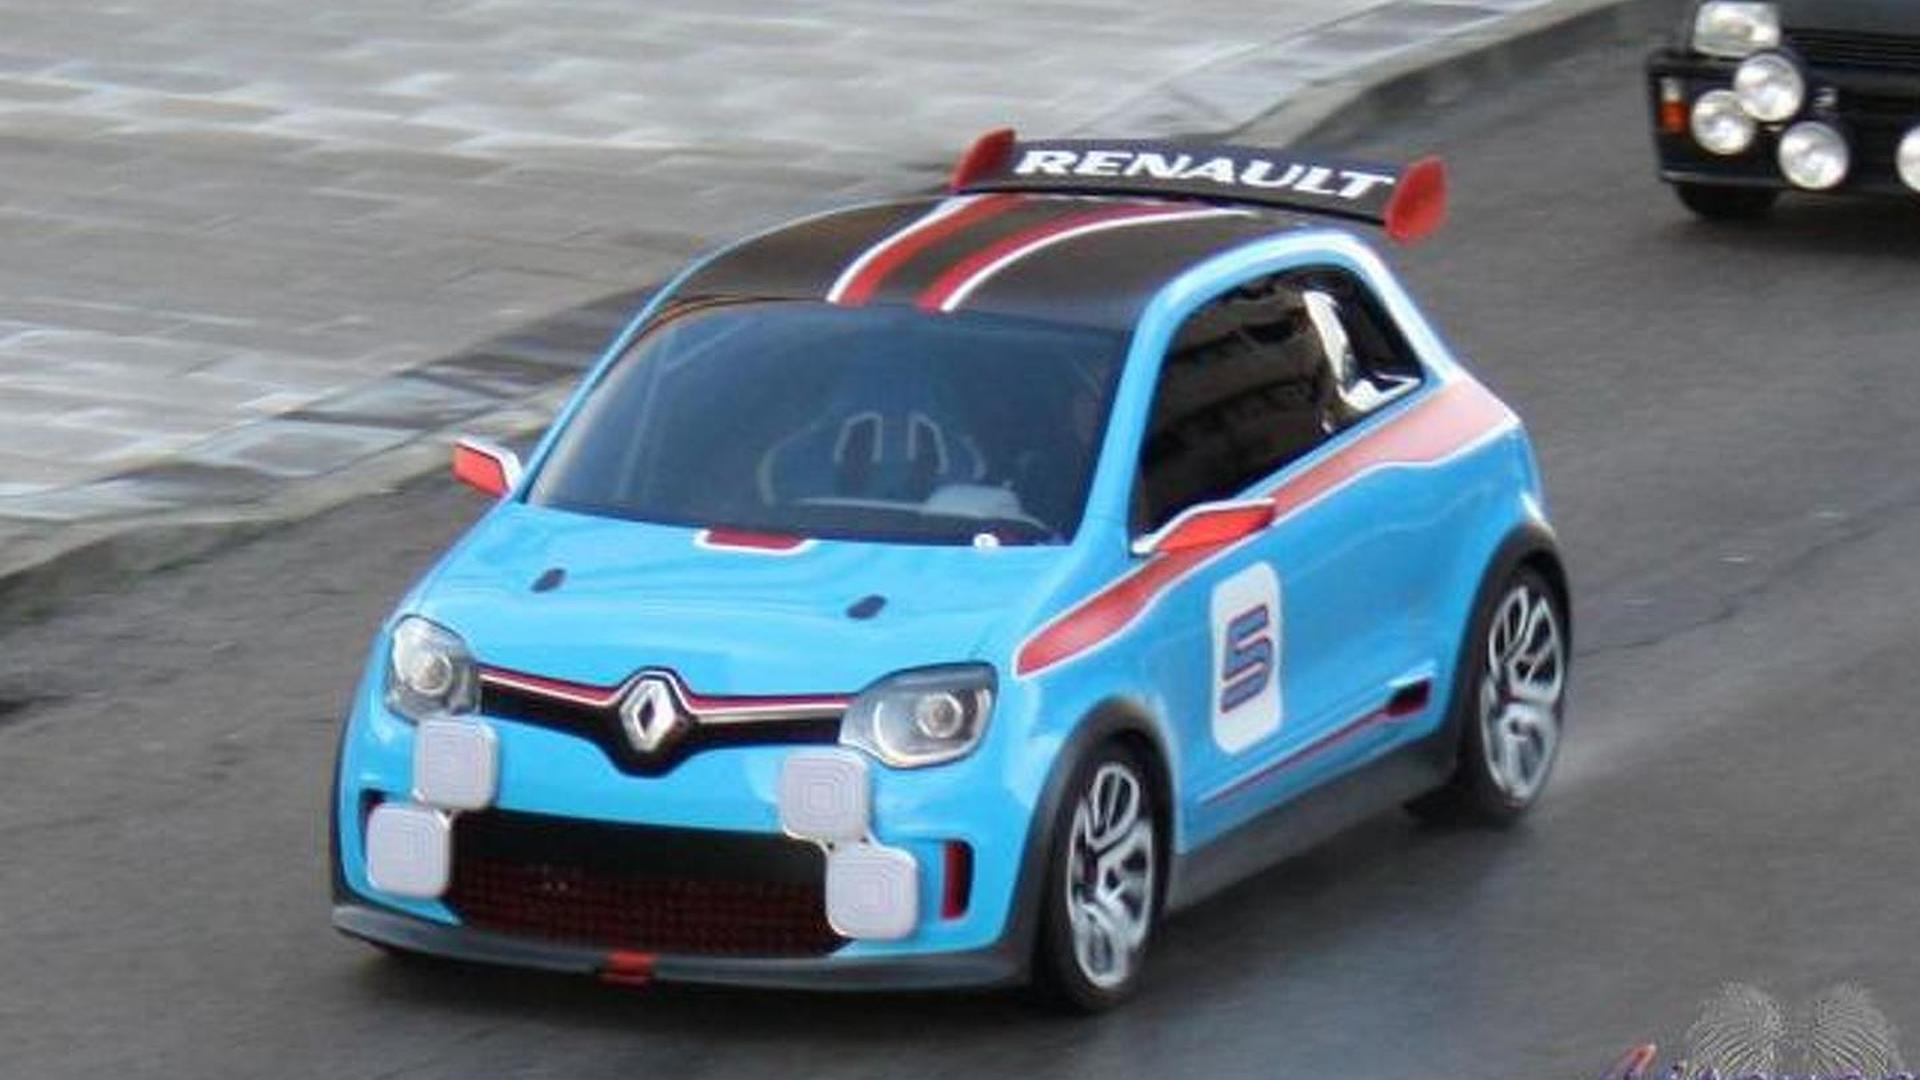 Renault TwinRun concept spotted, rear-wheel drive and mid-engined? [videos]